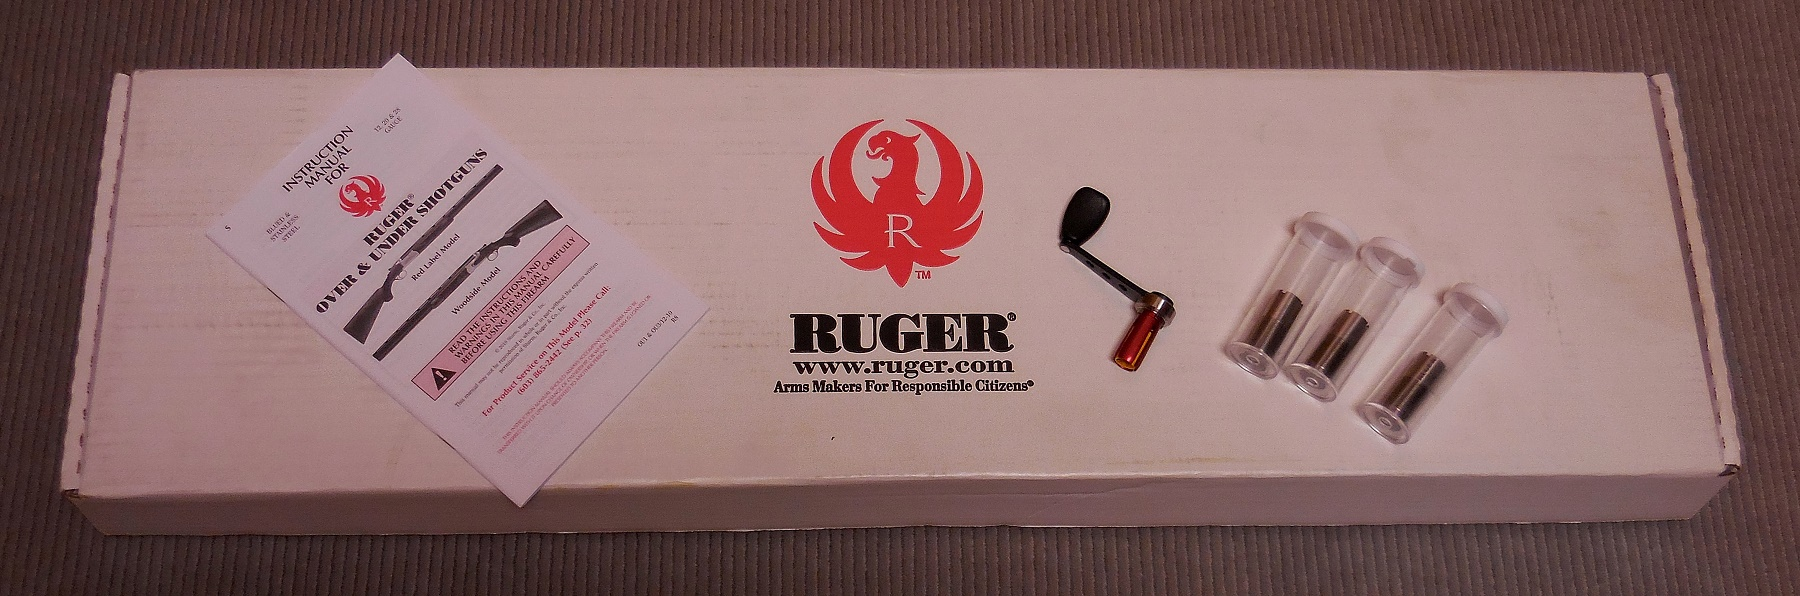 WUS100_Ruger_Red_Label_Box.jpg